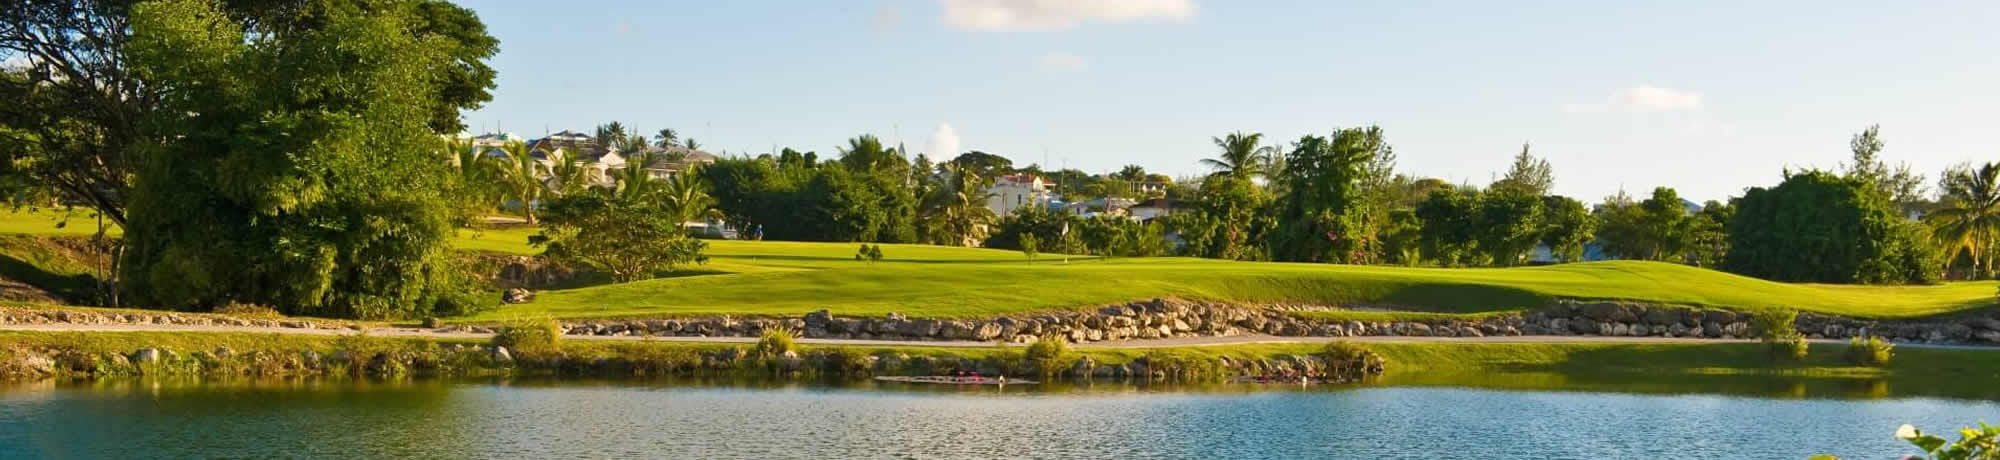 Barbados Golf Association